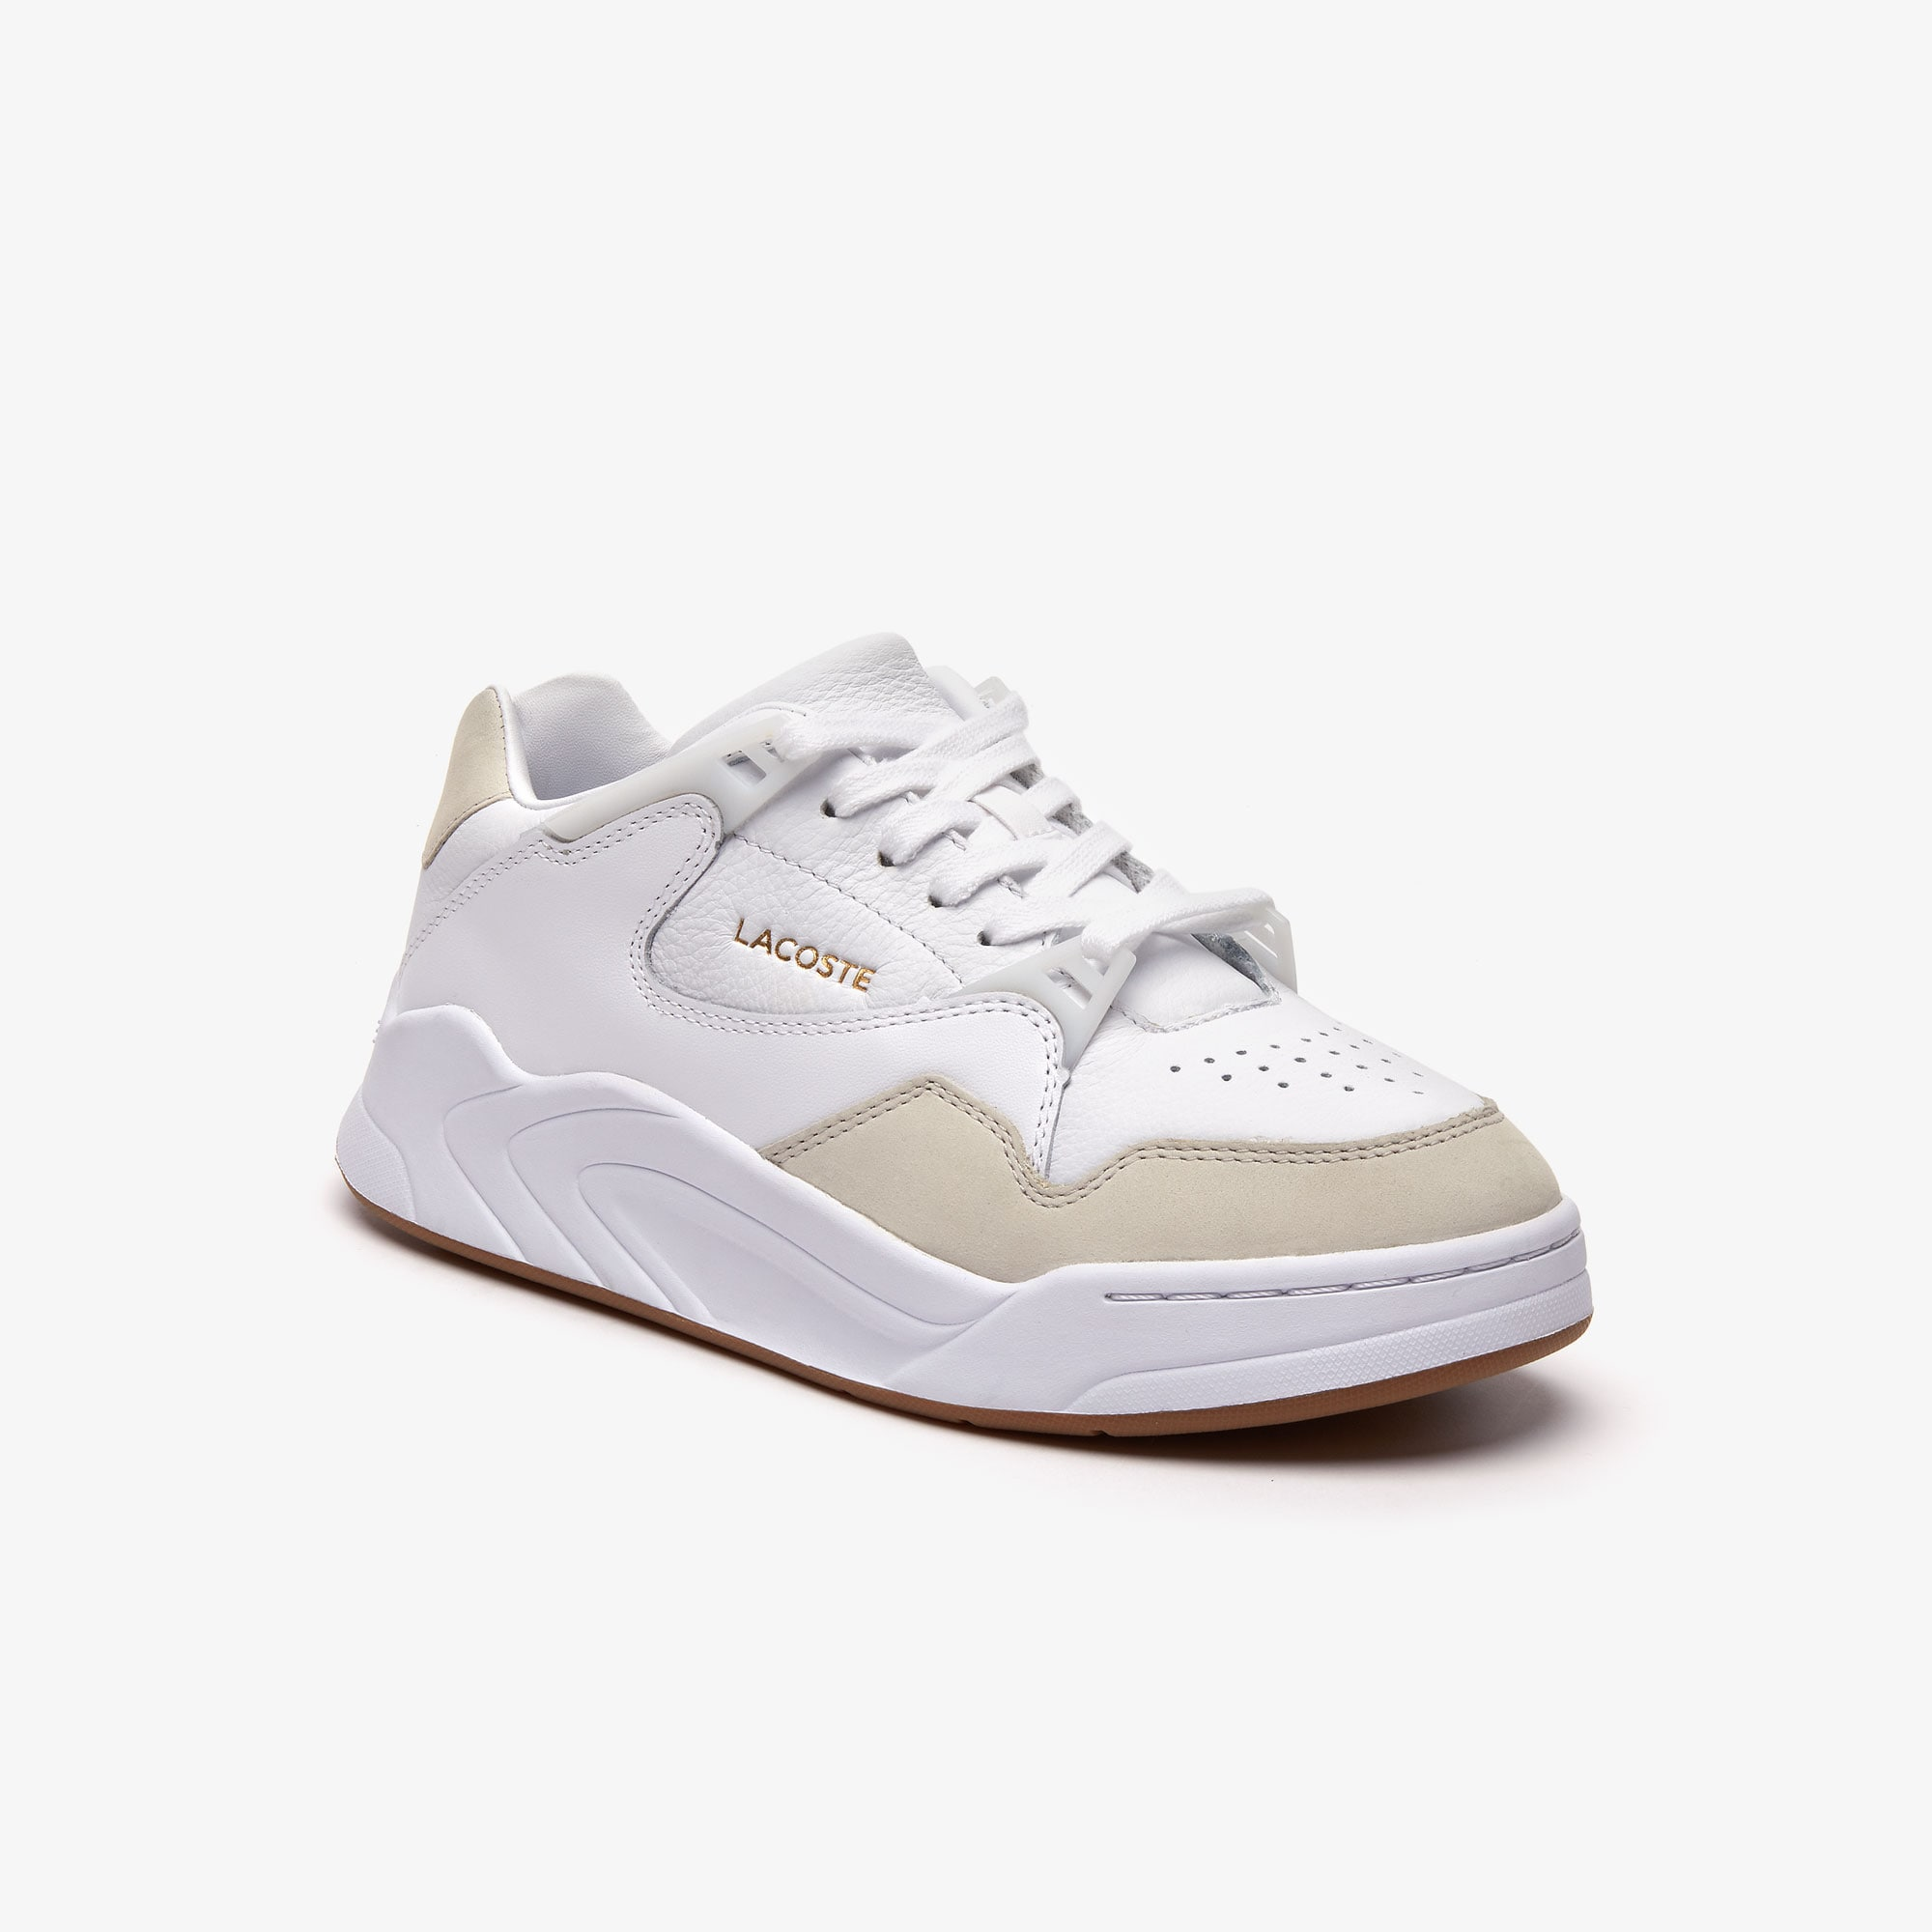 Lacoste Sneakers Women's Court Slam Leather Sneakers